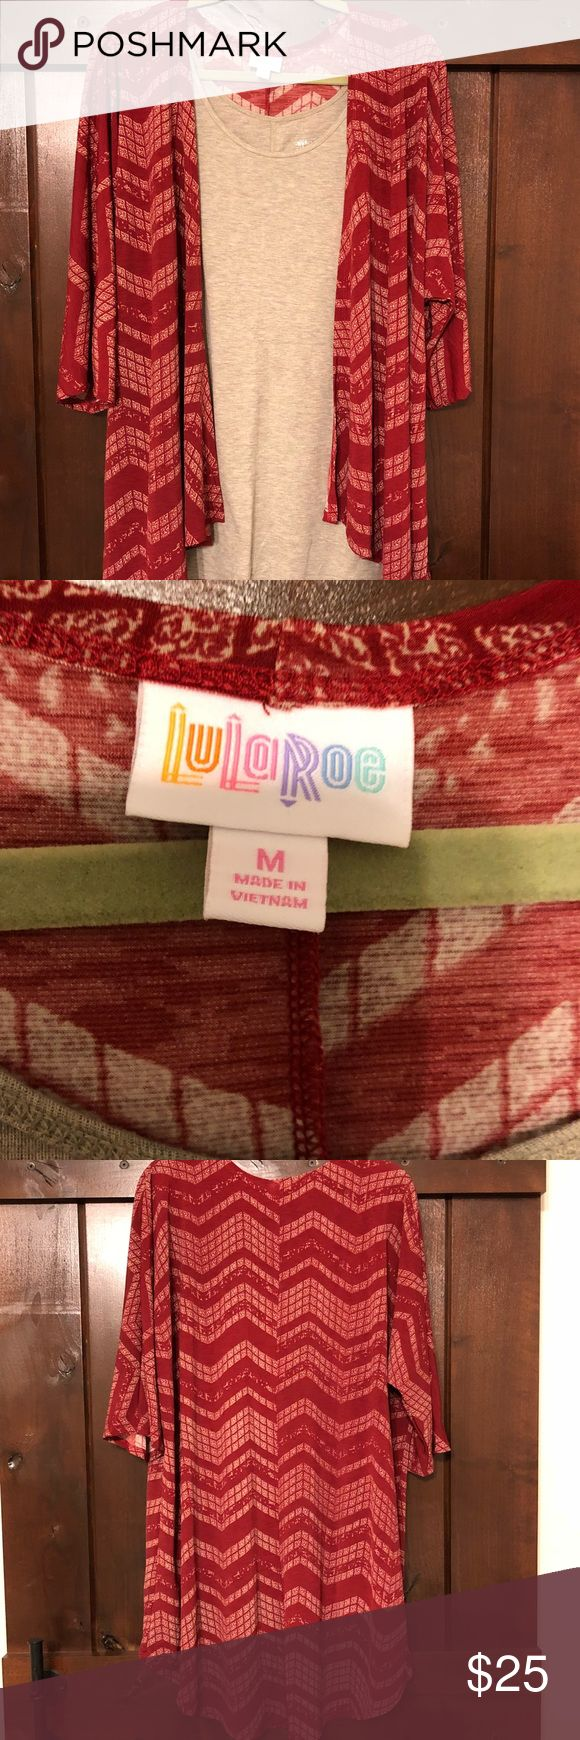 Lularoe Lindsay Kimono style jacket - Med This is a deep red and tan print kimono style jacket from the direct sales company Lularoe. Jacket only worn once. Made from a very lightweight stretch material. Would fit a ladies size 12-20. Camisole shown is not included- for styling purposes only. Jacket is short in the front and longer in the back. The back comes down to the back of my knees so there is ample coverage. Looks great with skinny pants, leggings, slacks and is great to have if you…